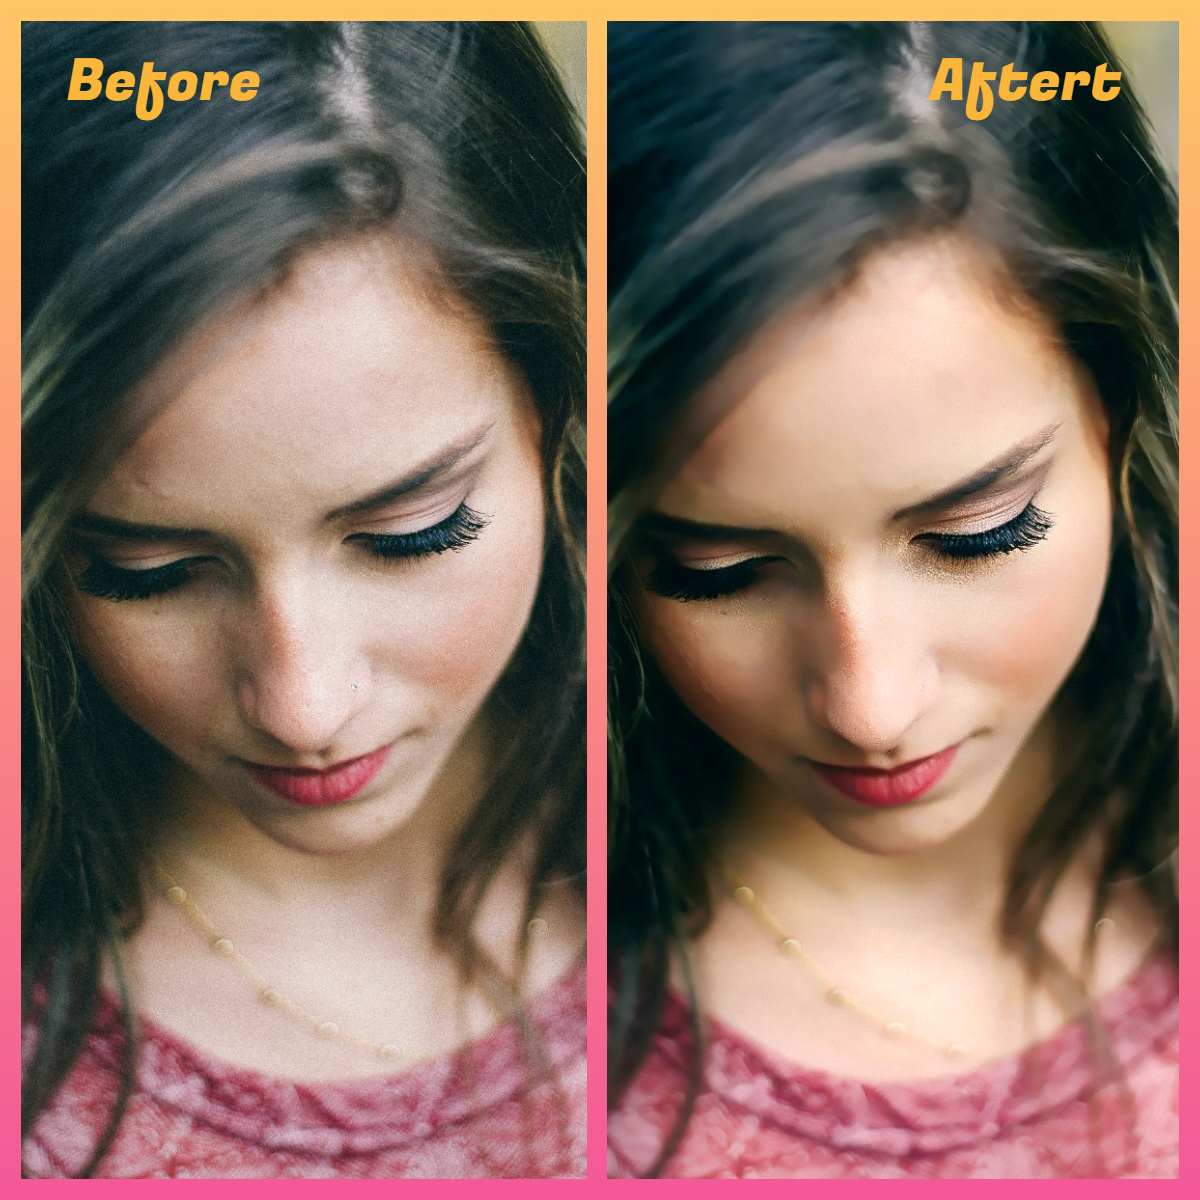 I will edit retouch photo image for you